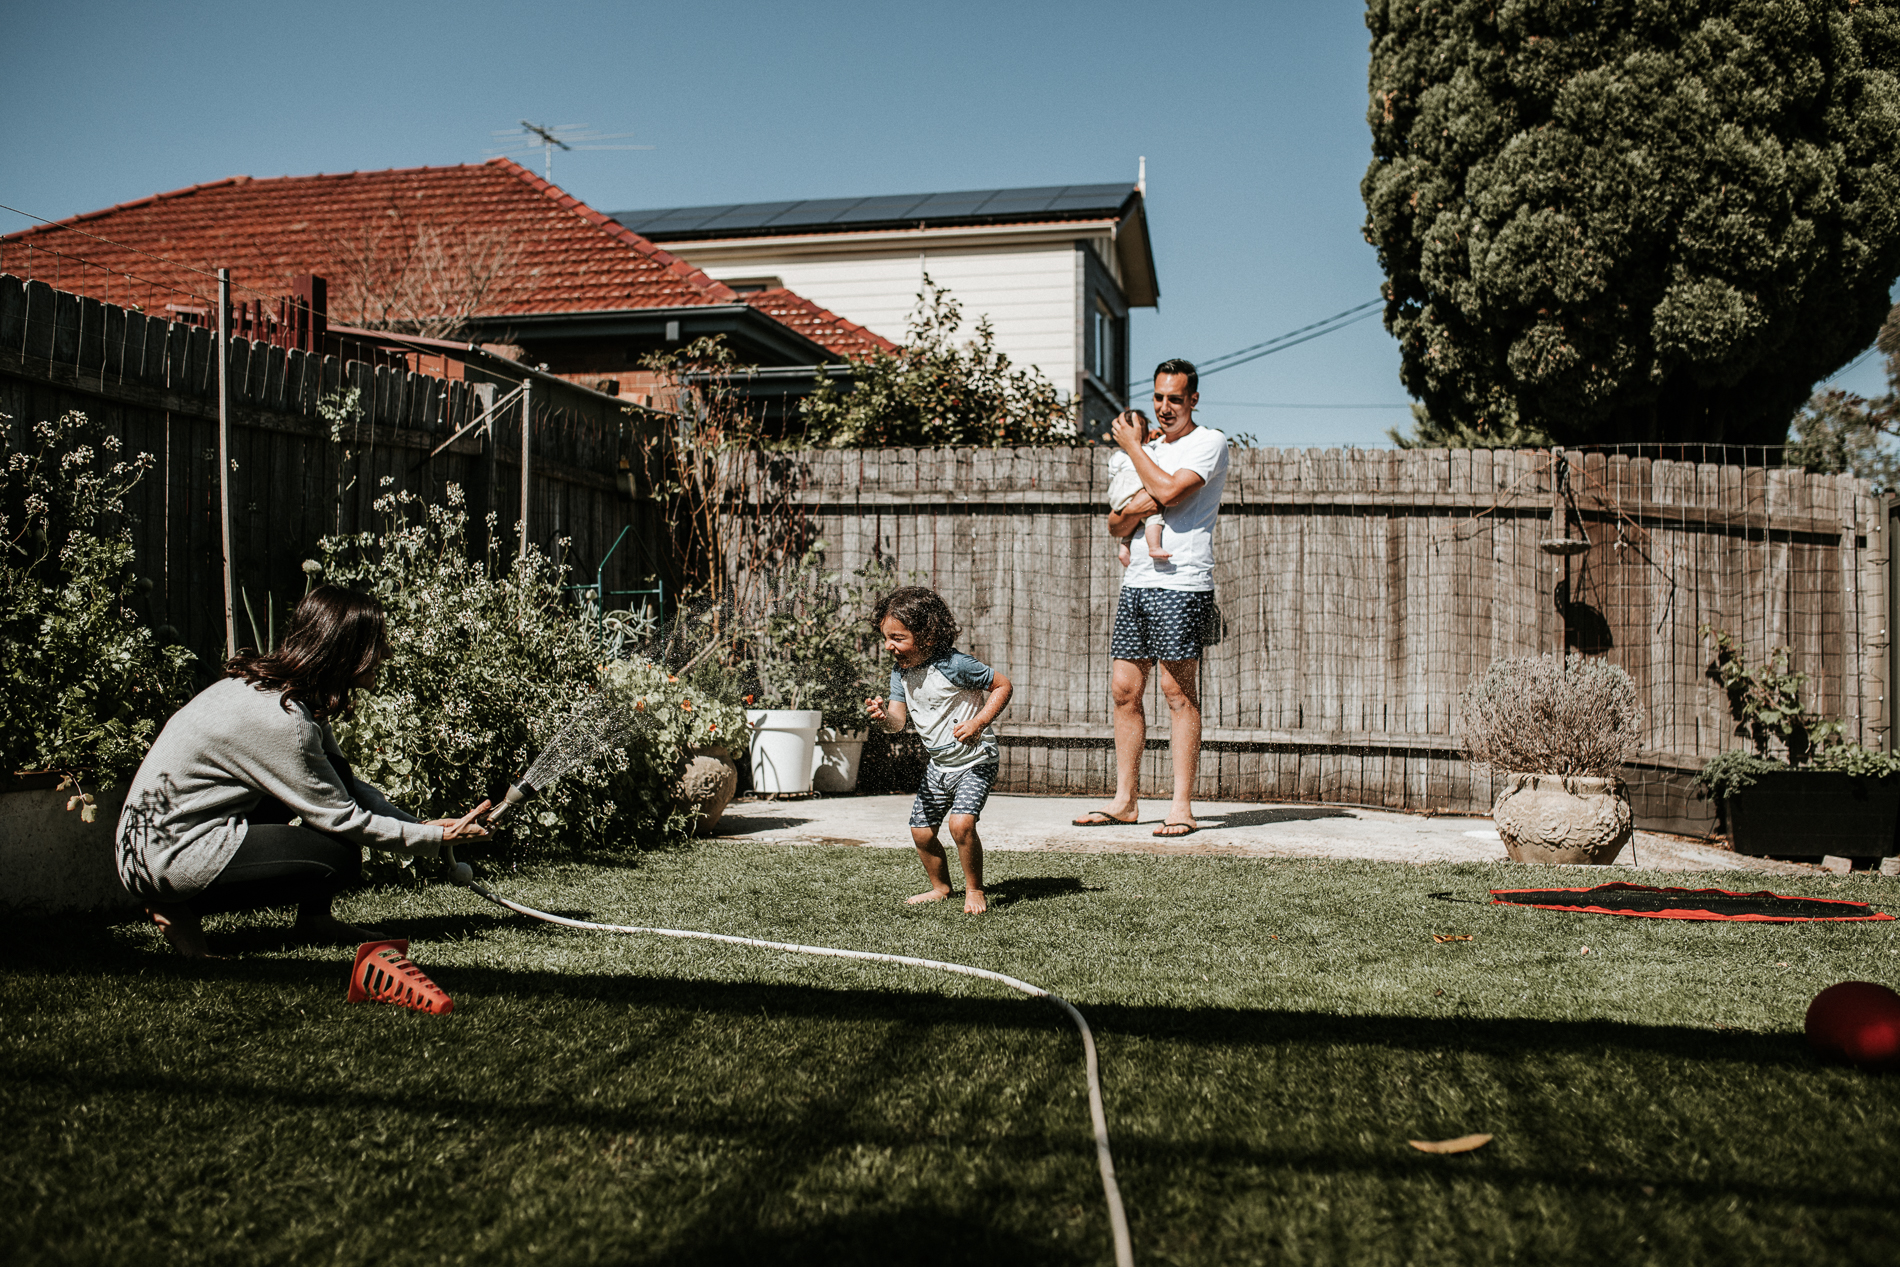 20180915_Sydney_Family_Photographer_ 6272.jpg